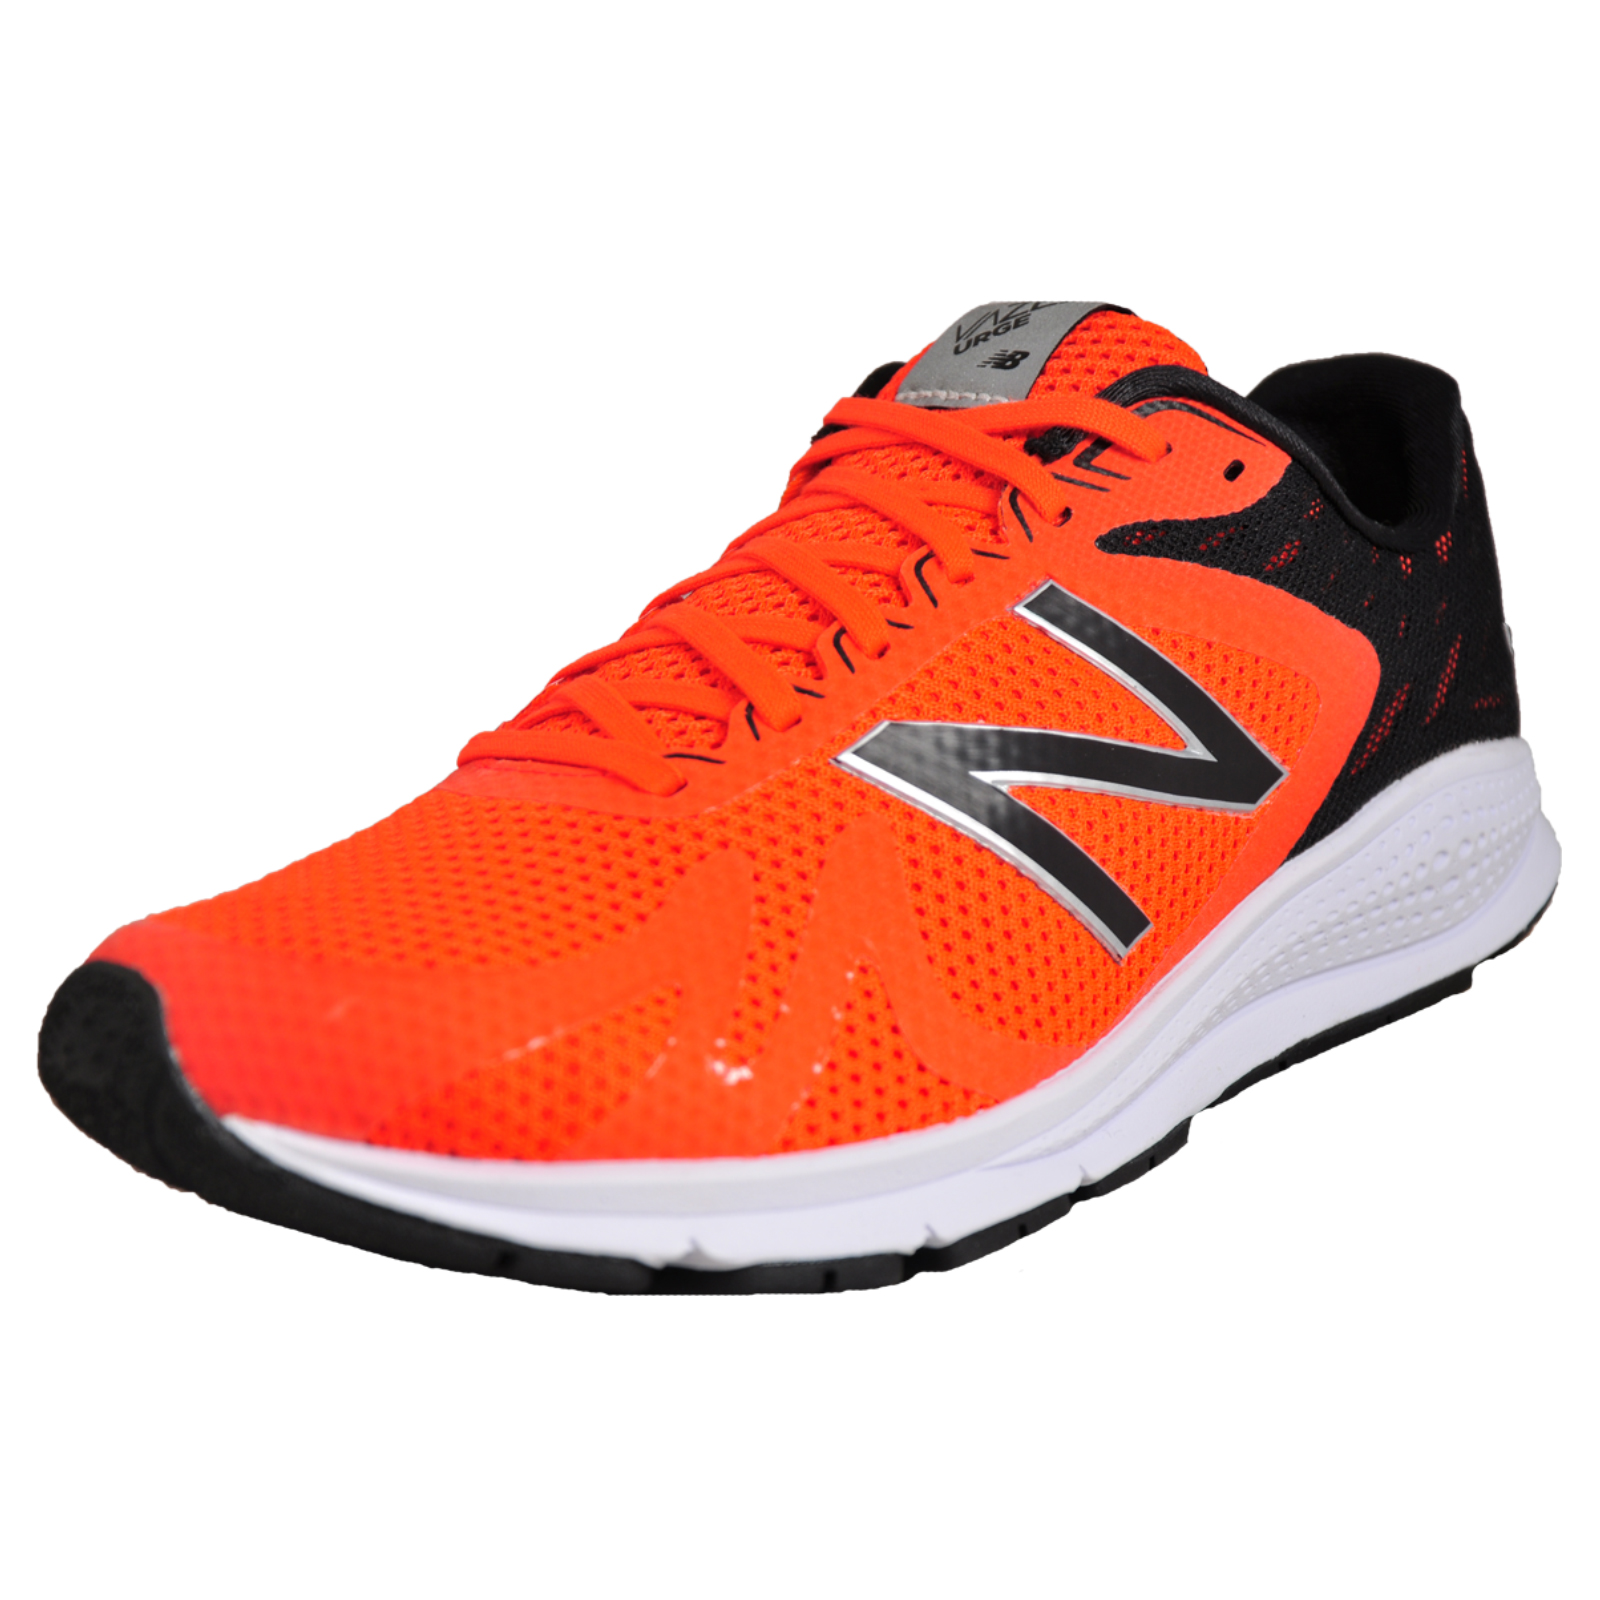 98b3191ce489 Details about New Balance Vazee Urge v1 Men s Elite Running Shoes Fitness  Gym Trainers Orange